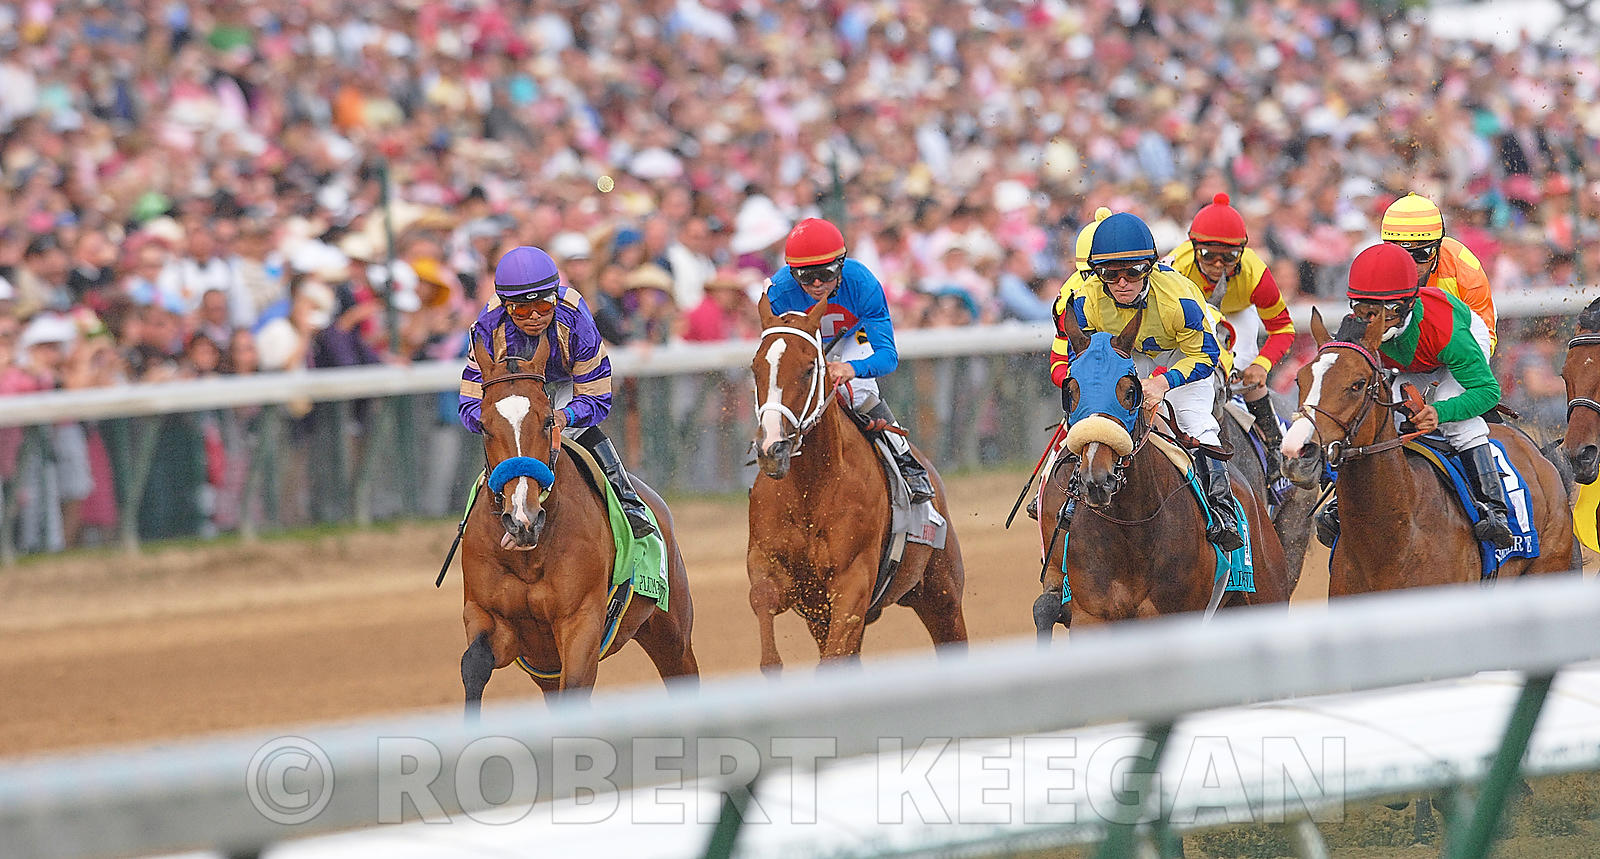 Kentucky Oaks Race photos